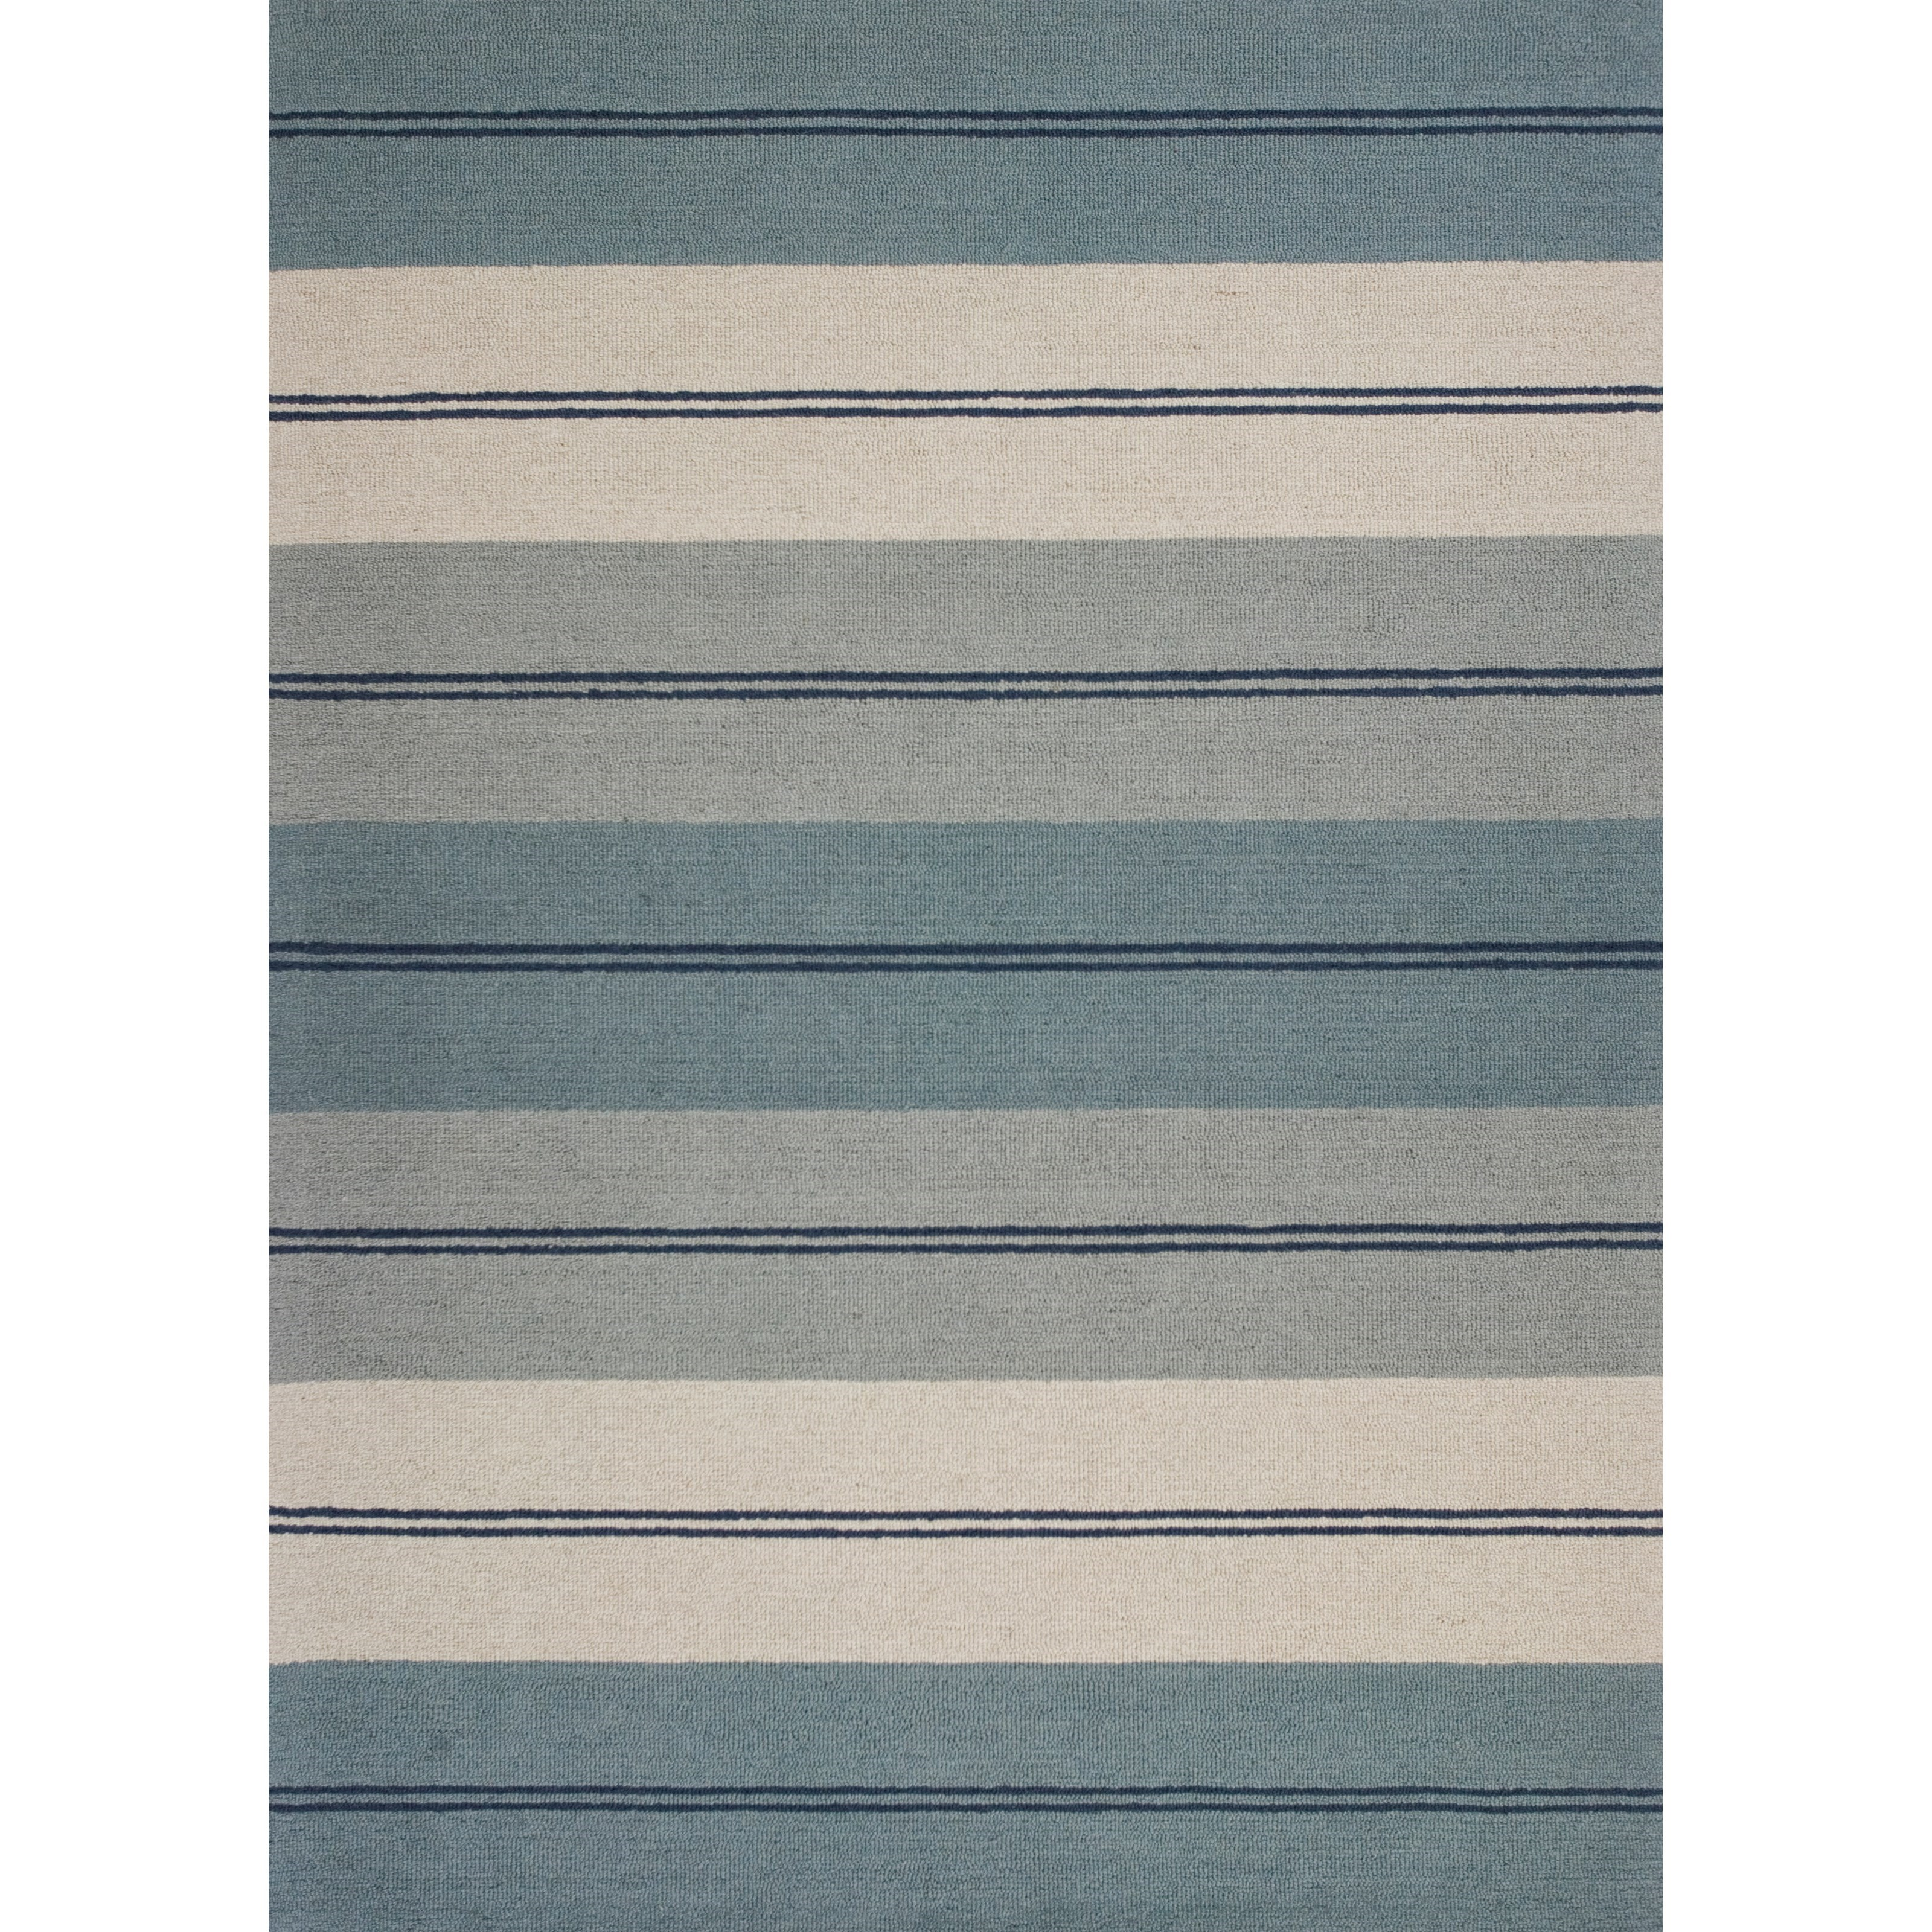 9' x 12' Ivory/Blue Visions Rug